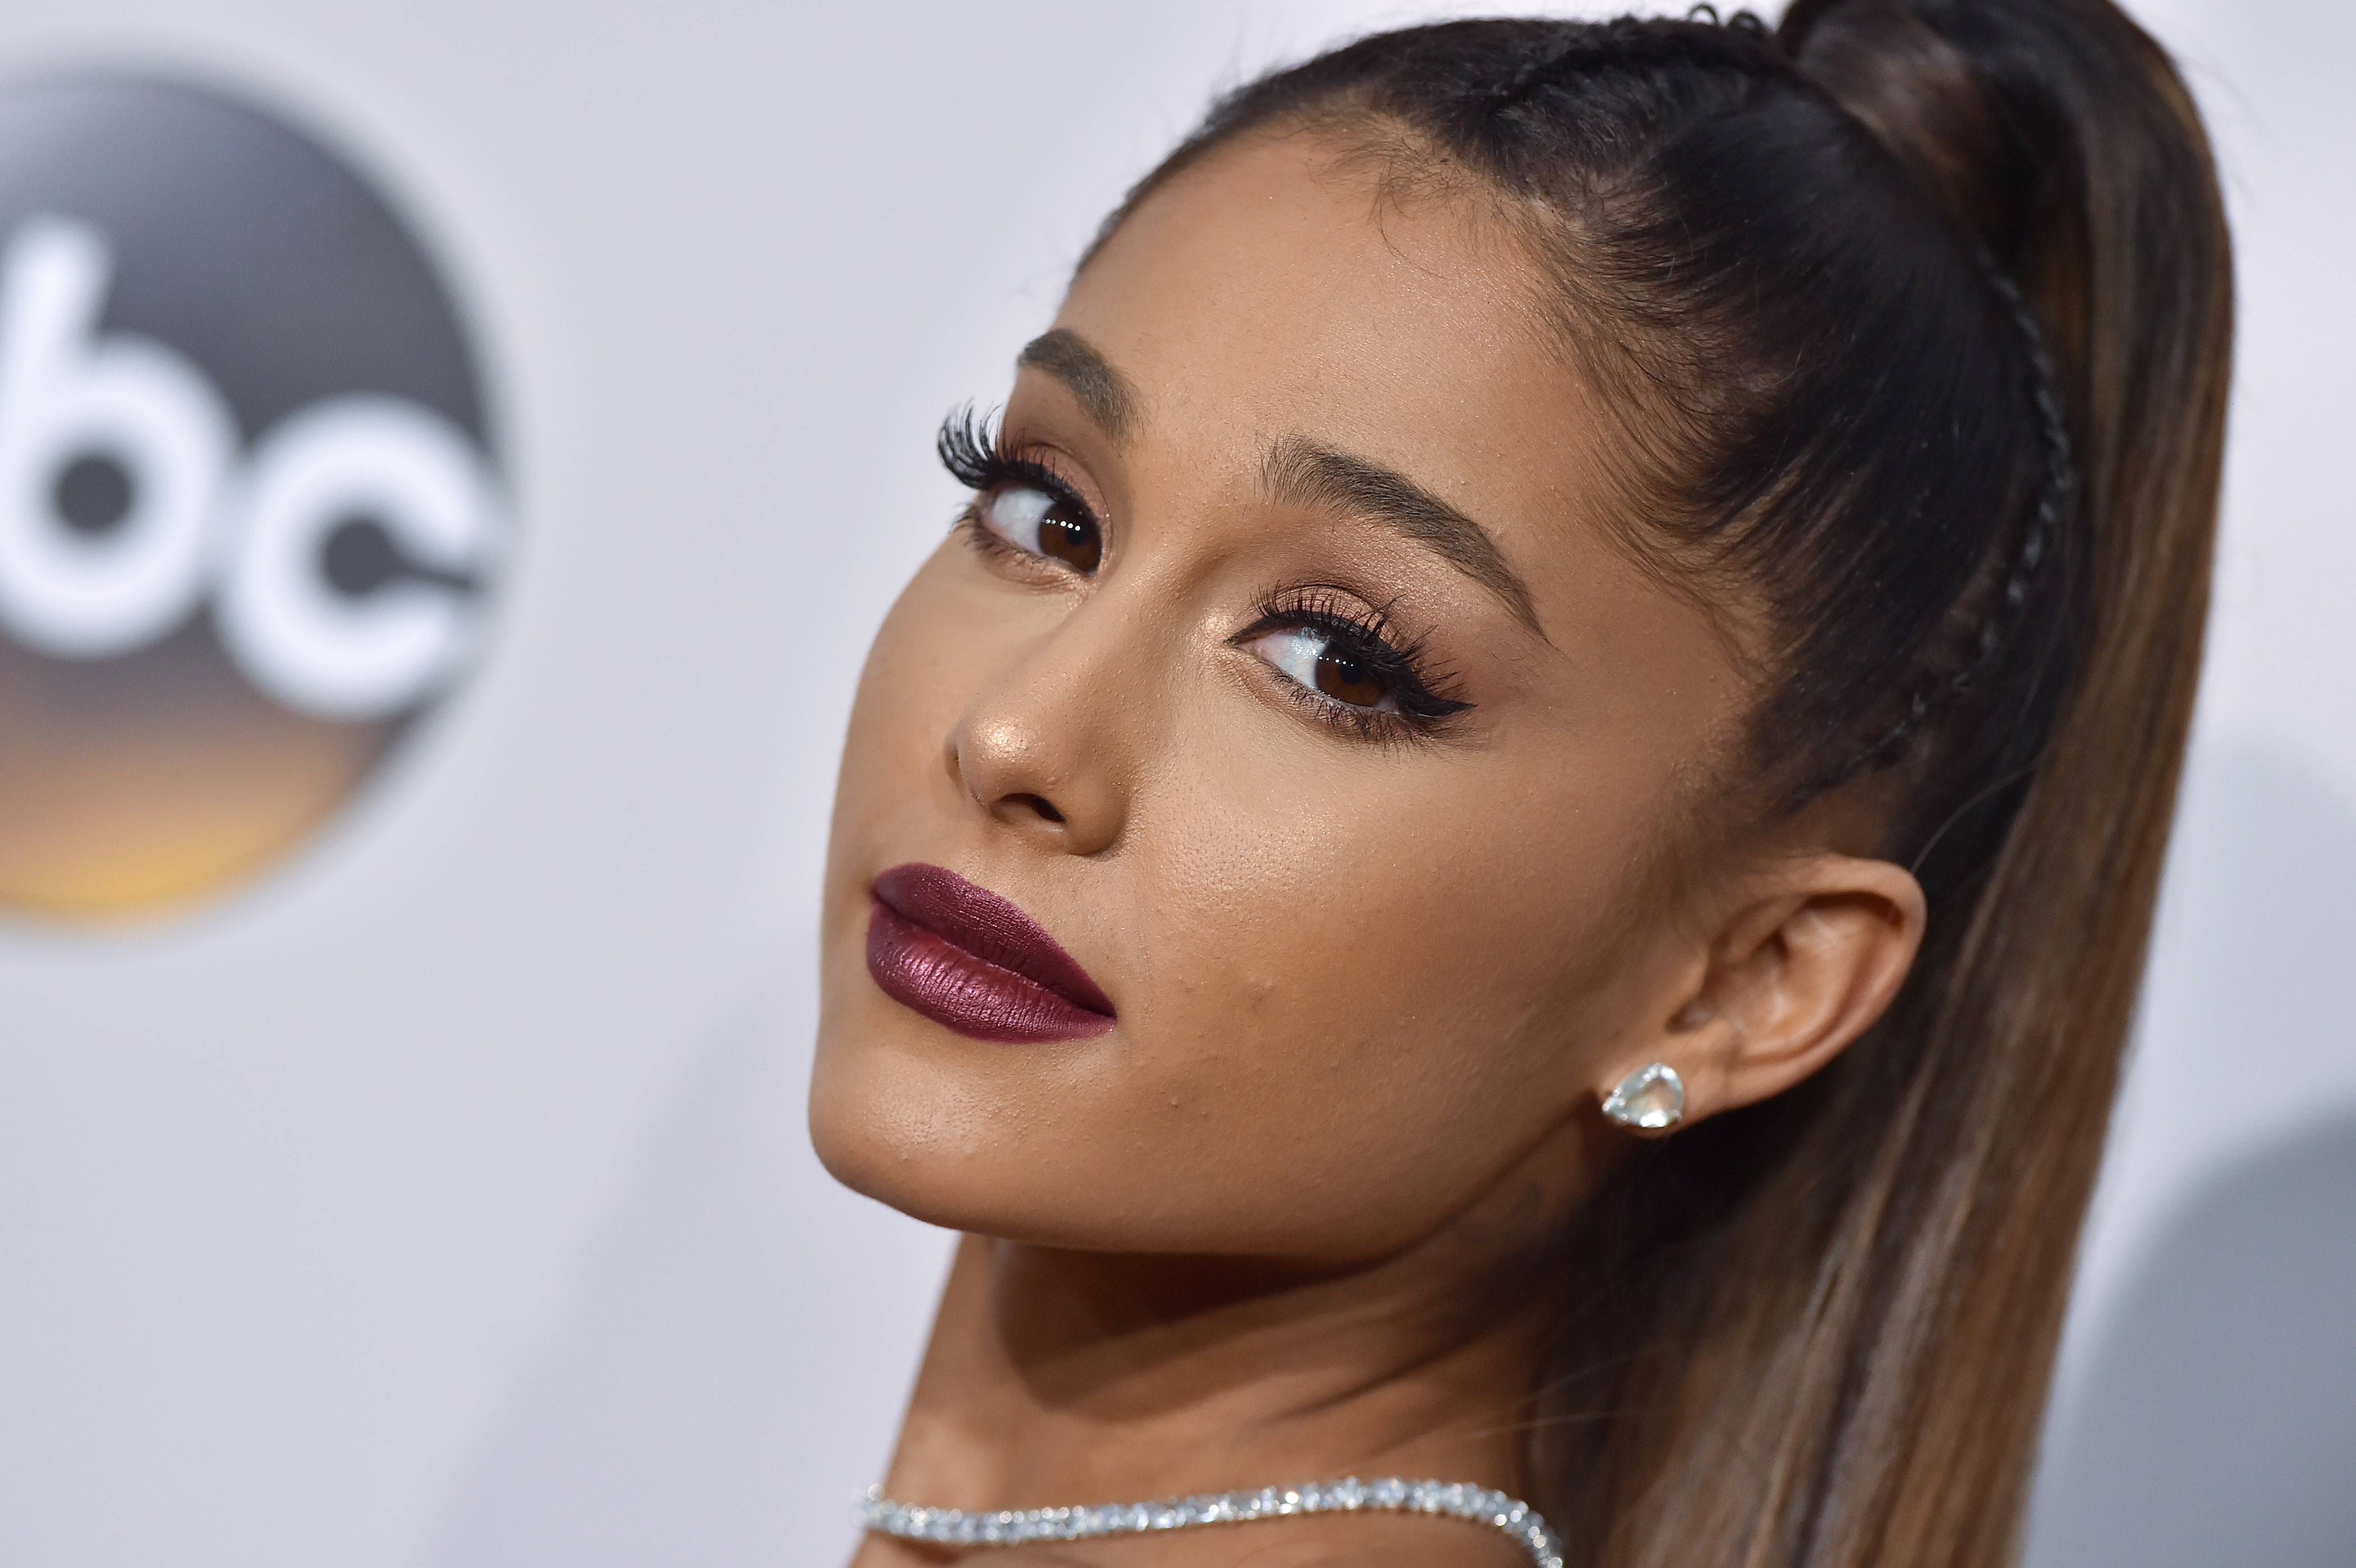 Singer Ariana Grande arrives at the 2016 American Music Awards at Microsoft Theater on Nov. 20, 2016 in Los Angeles, California.